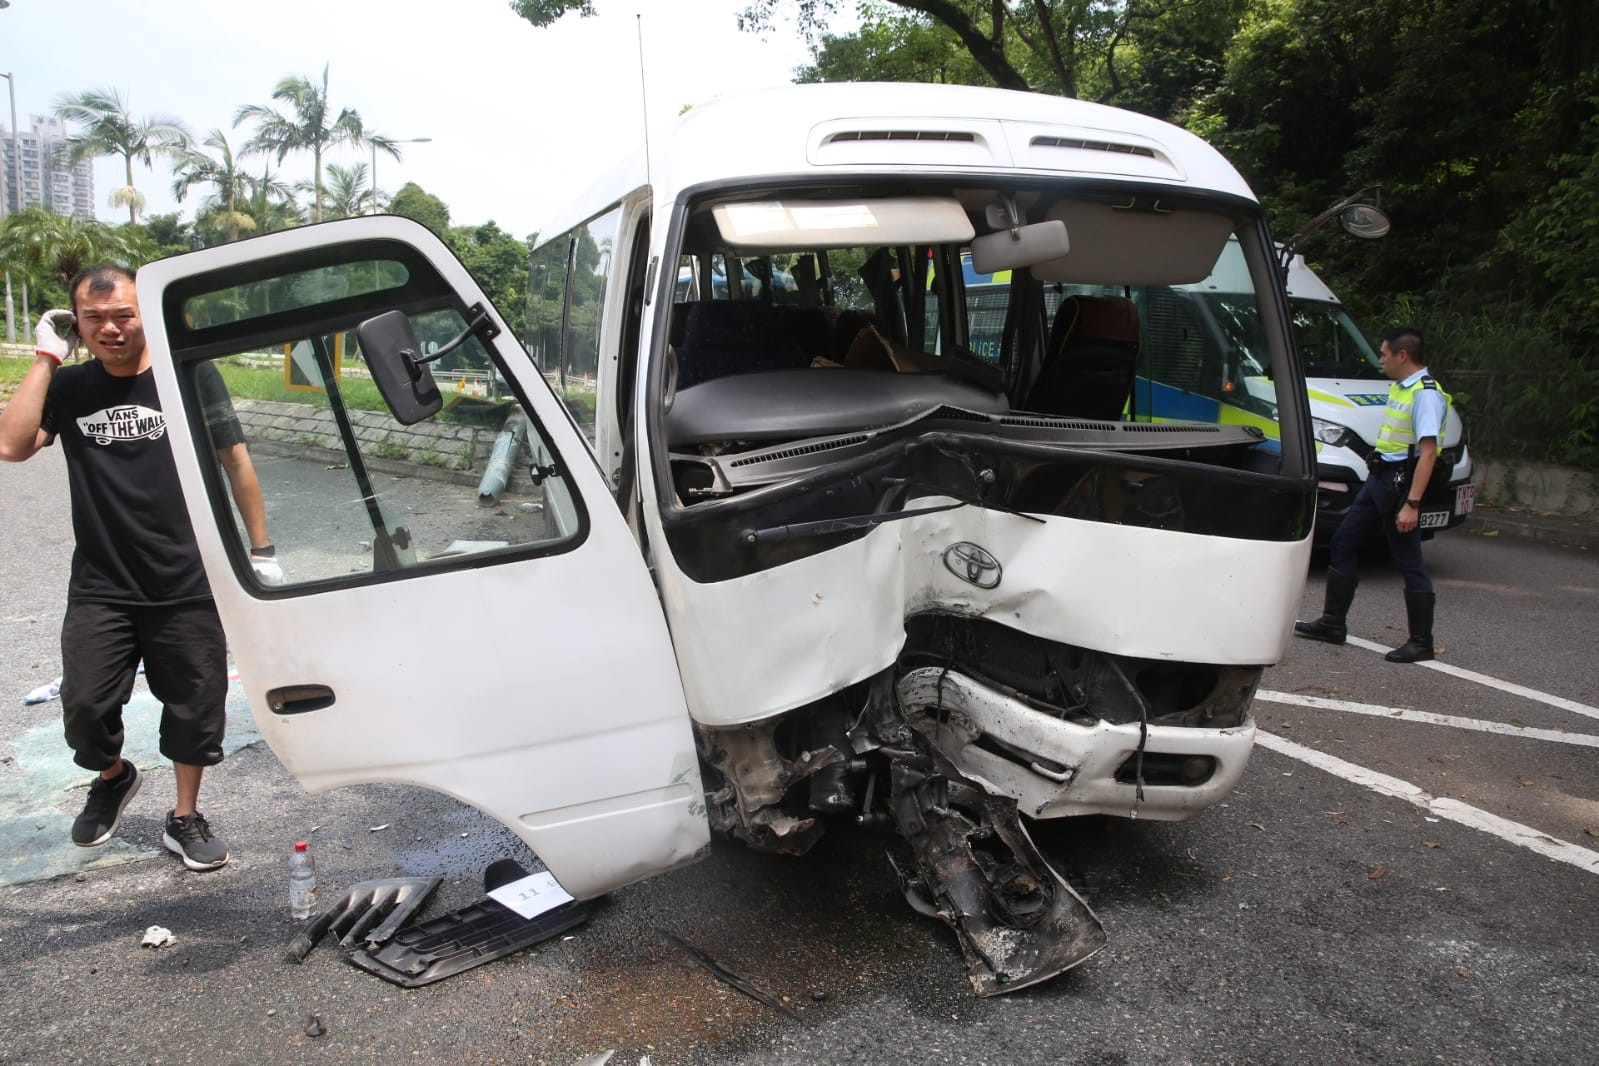 Accidents and personal safety in Hong Kong | South China